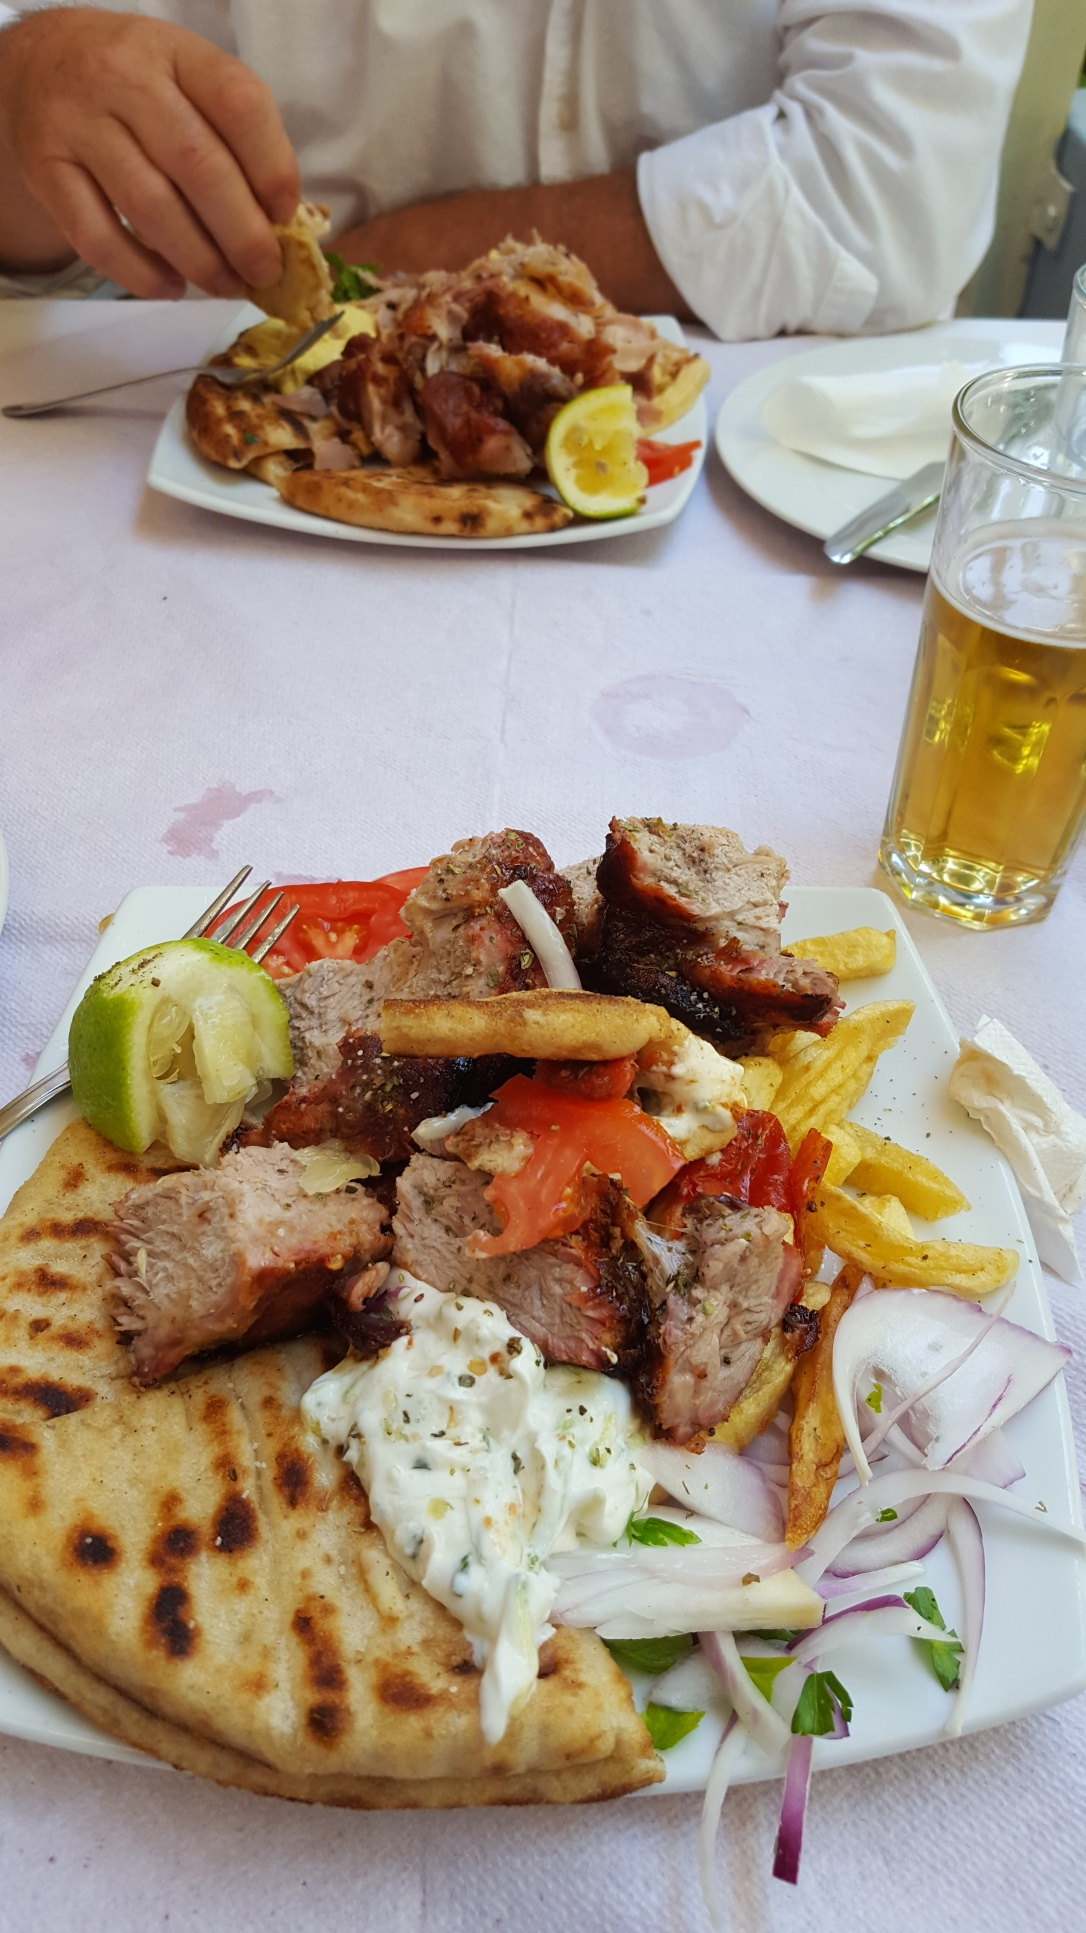 Lunch--I love gyros, don't you?